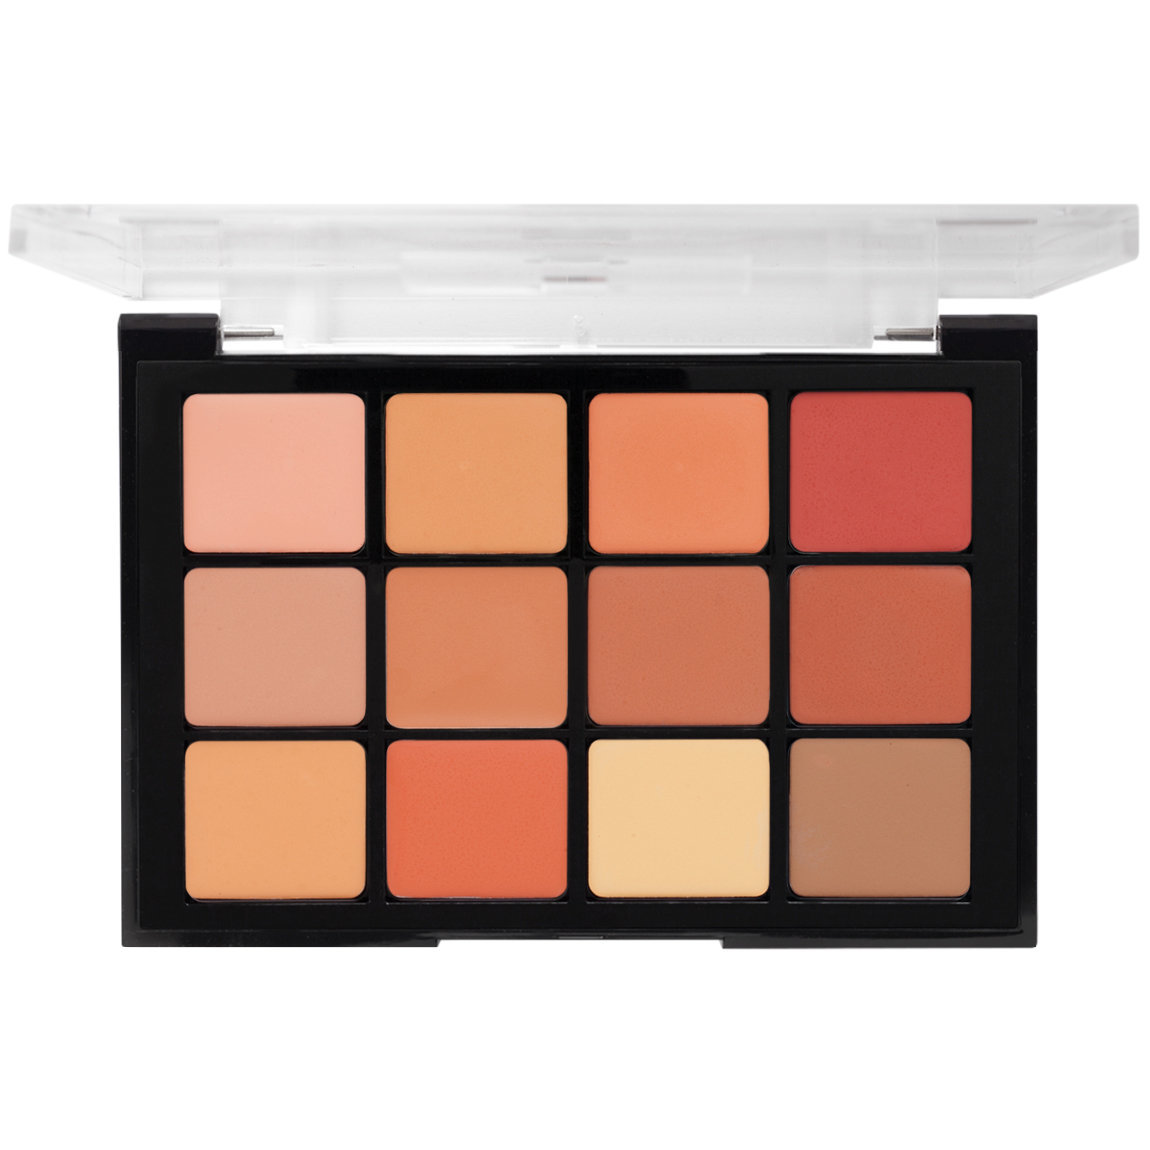 Viseart Corrector Contour Camouflage HD Palette 02 alternative view 1 - product swatch.